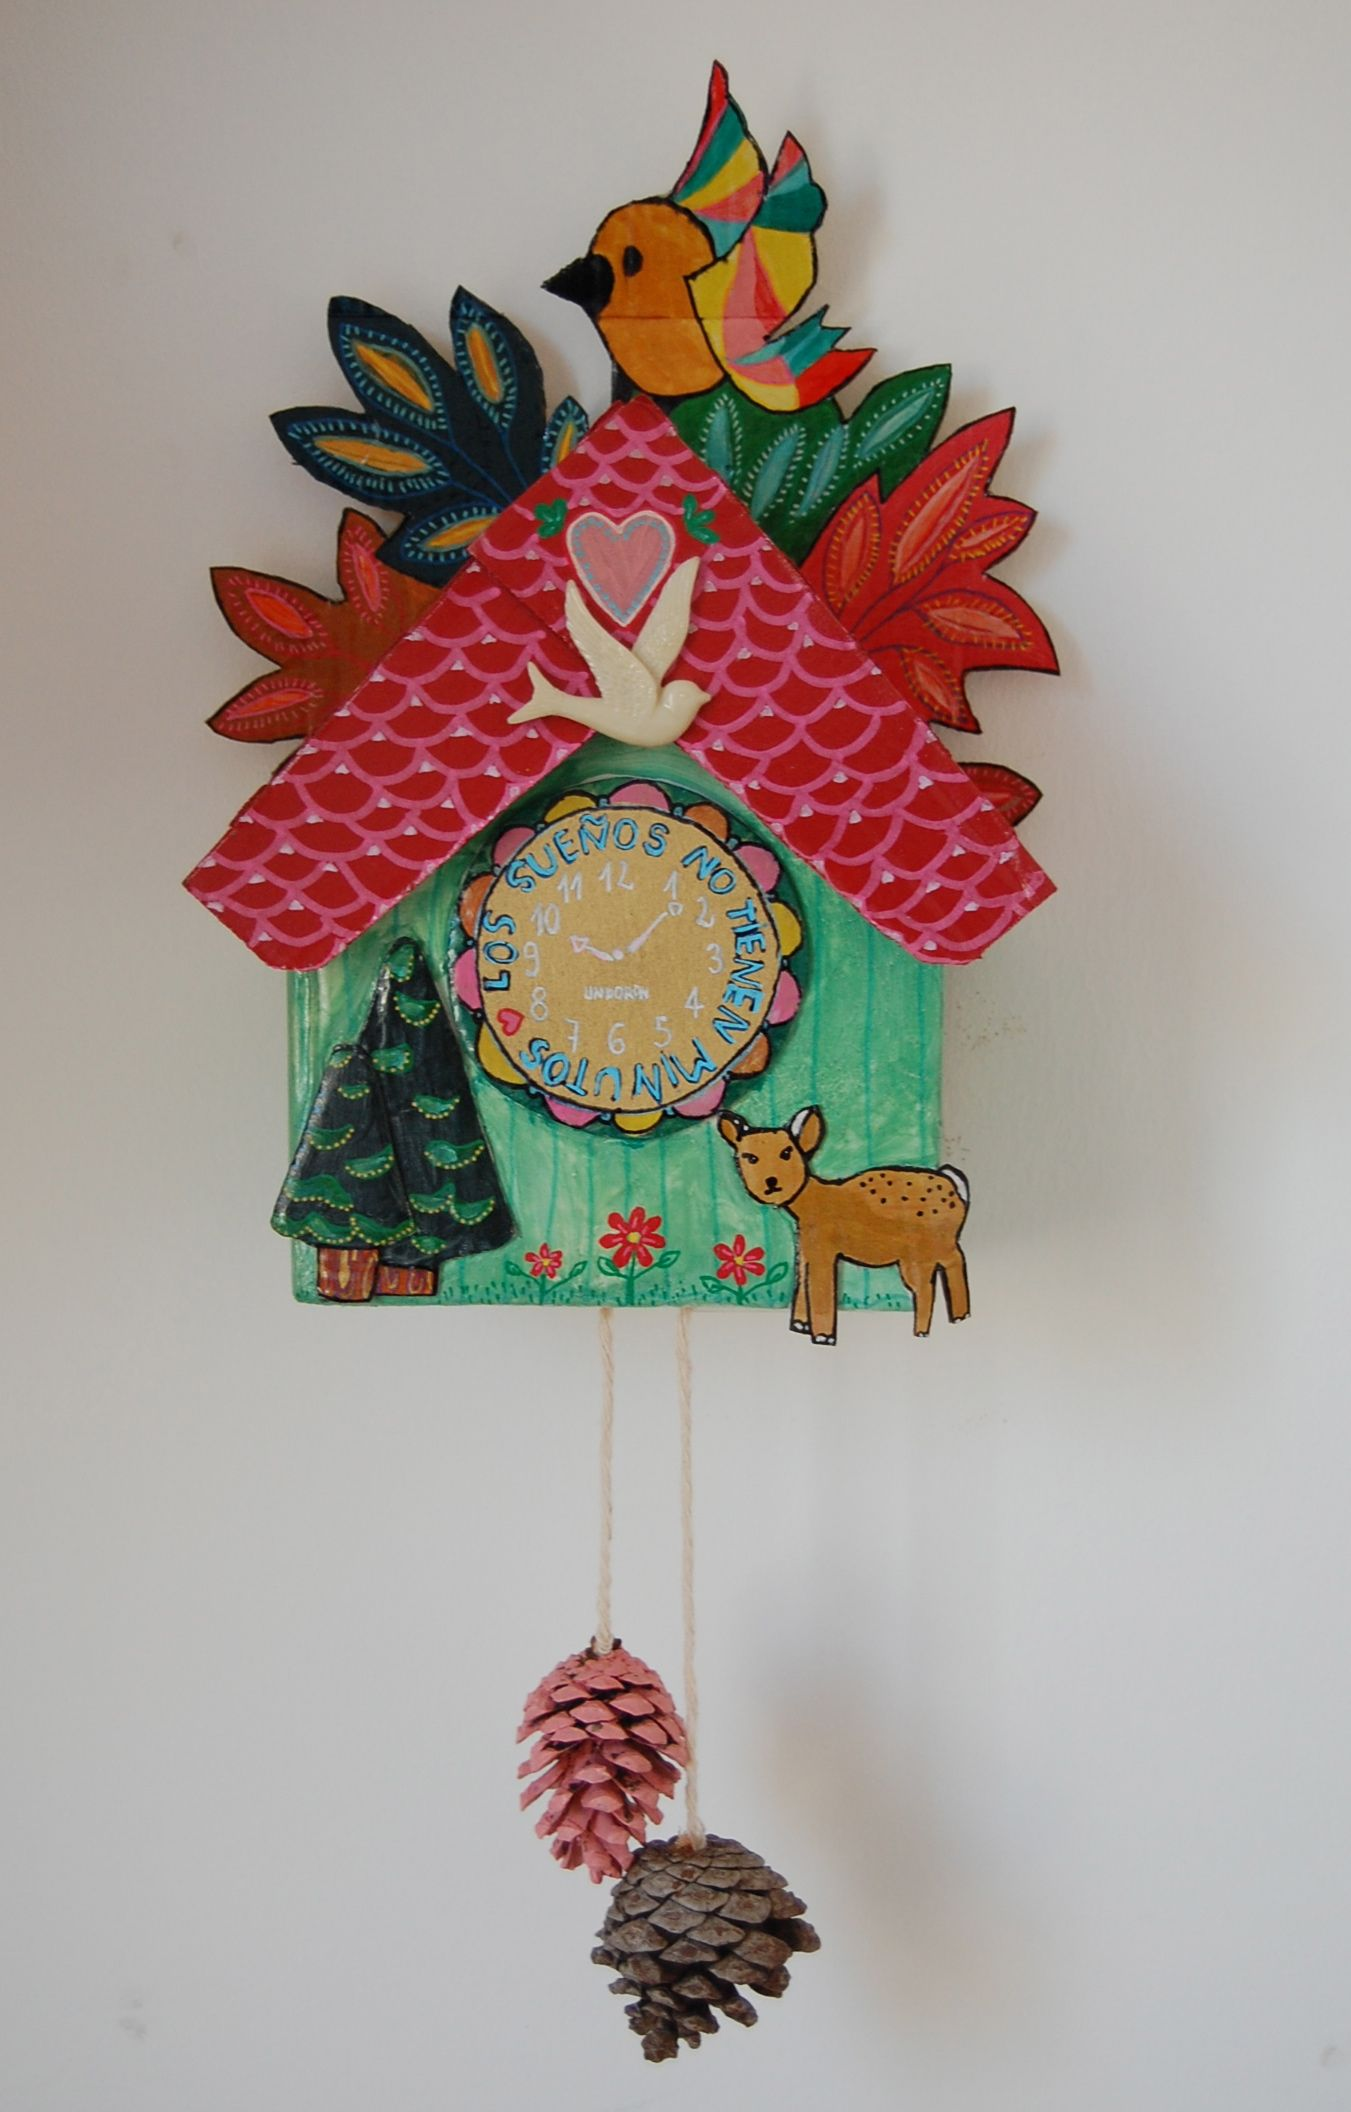 Cuckoo Clock Made With Cardboard 2nd Second Grade Art